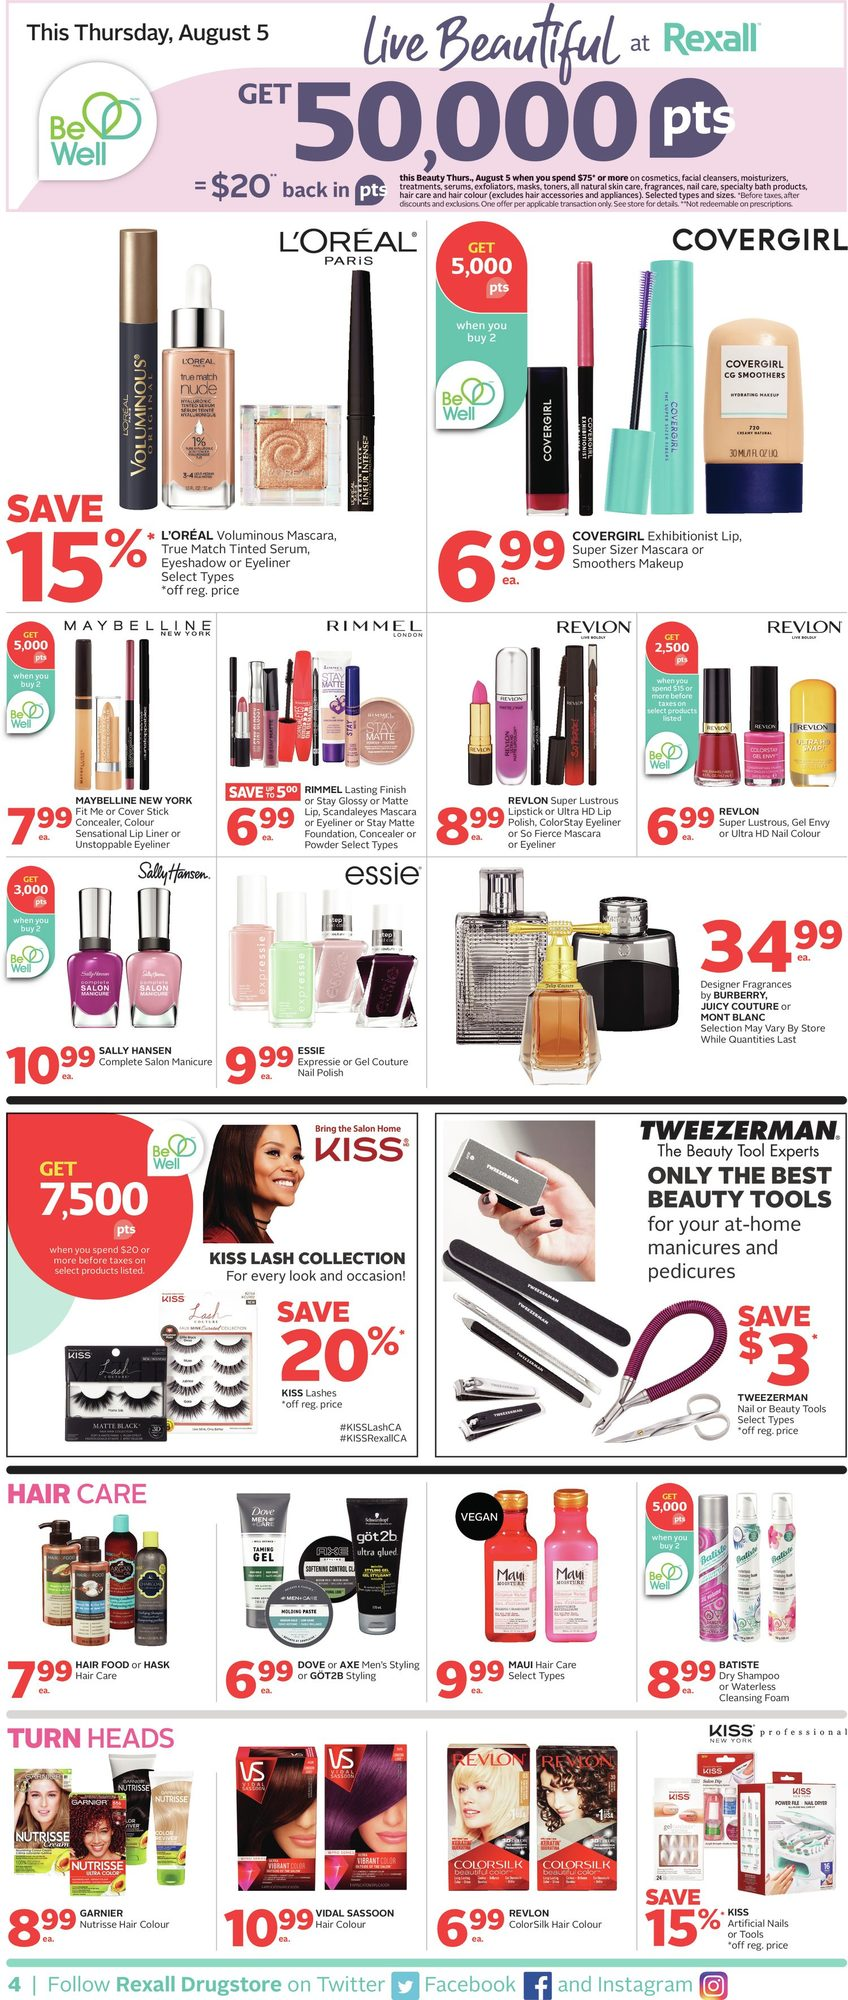 Rexall - Weekly Flyer Specials - Page 8